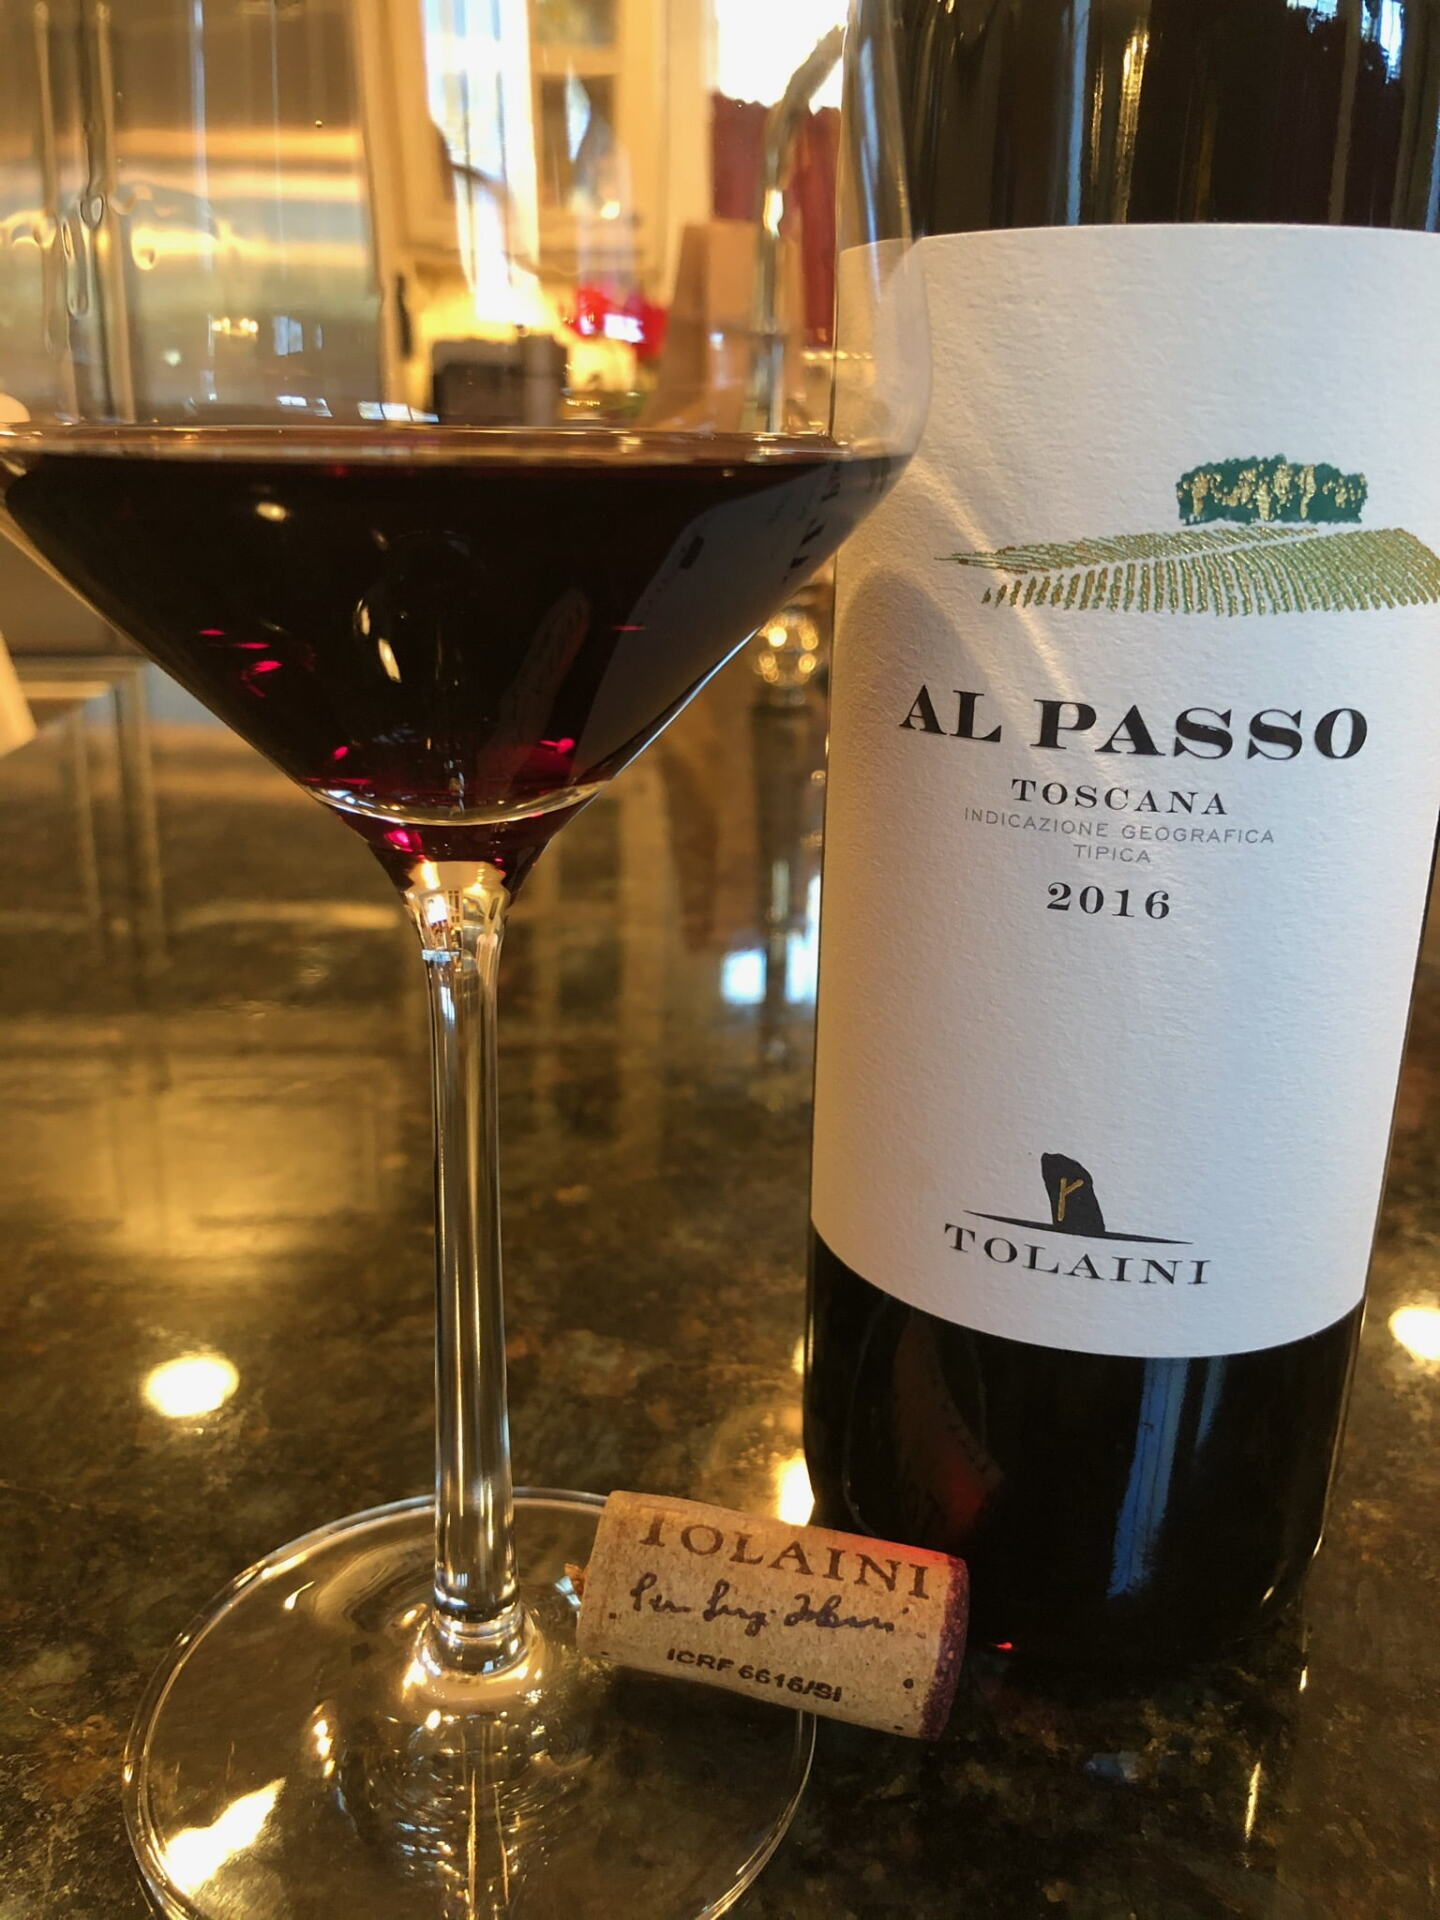 Al Passo bottle of wine